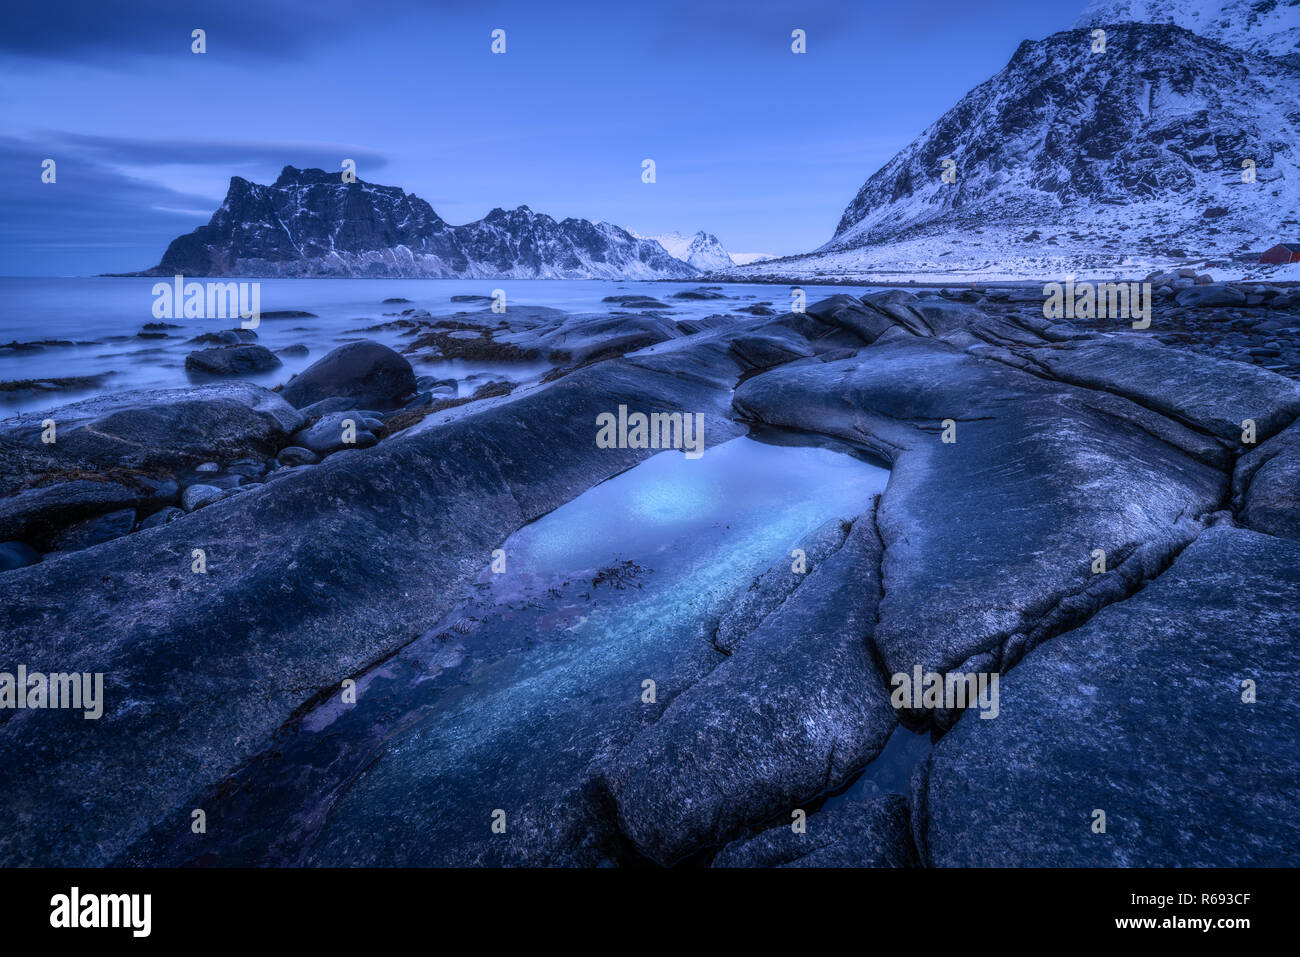 Seashore with stones and blurred water, against snowy mountains and blue sky with clouds at dusk. Uttakleiv beach in Lofoten islands, Norway. Winter l - Stock Image